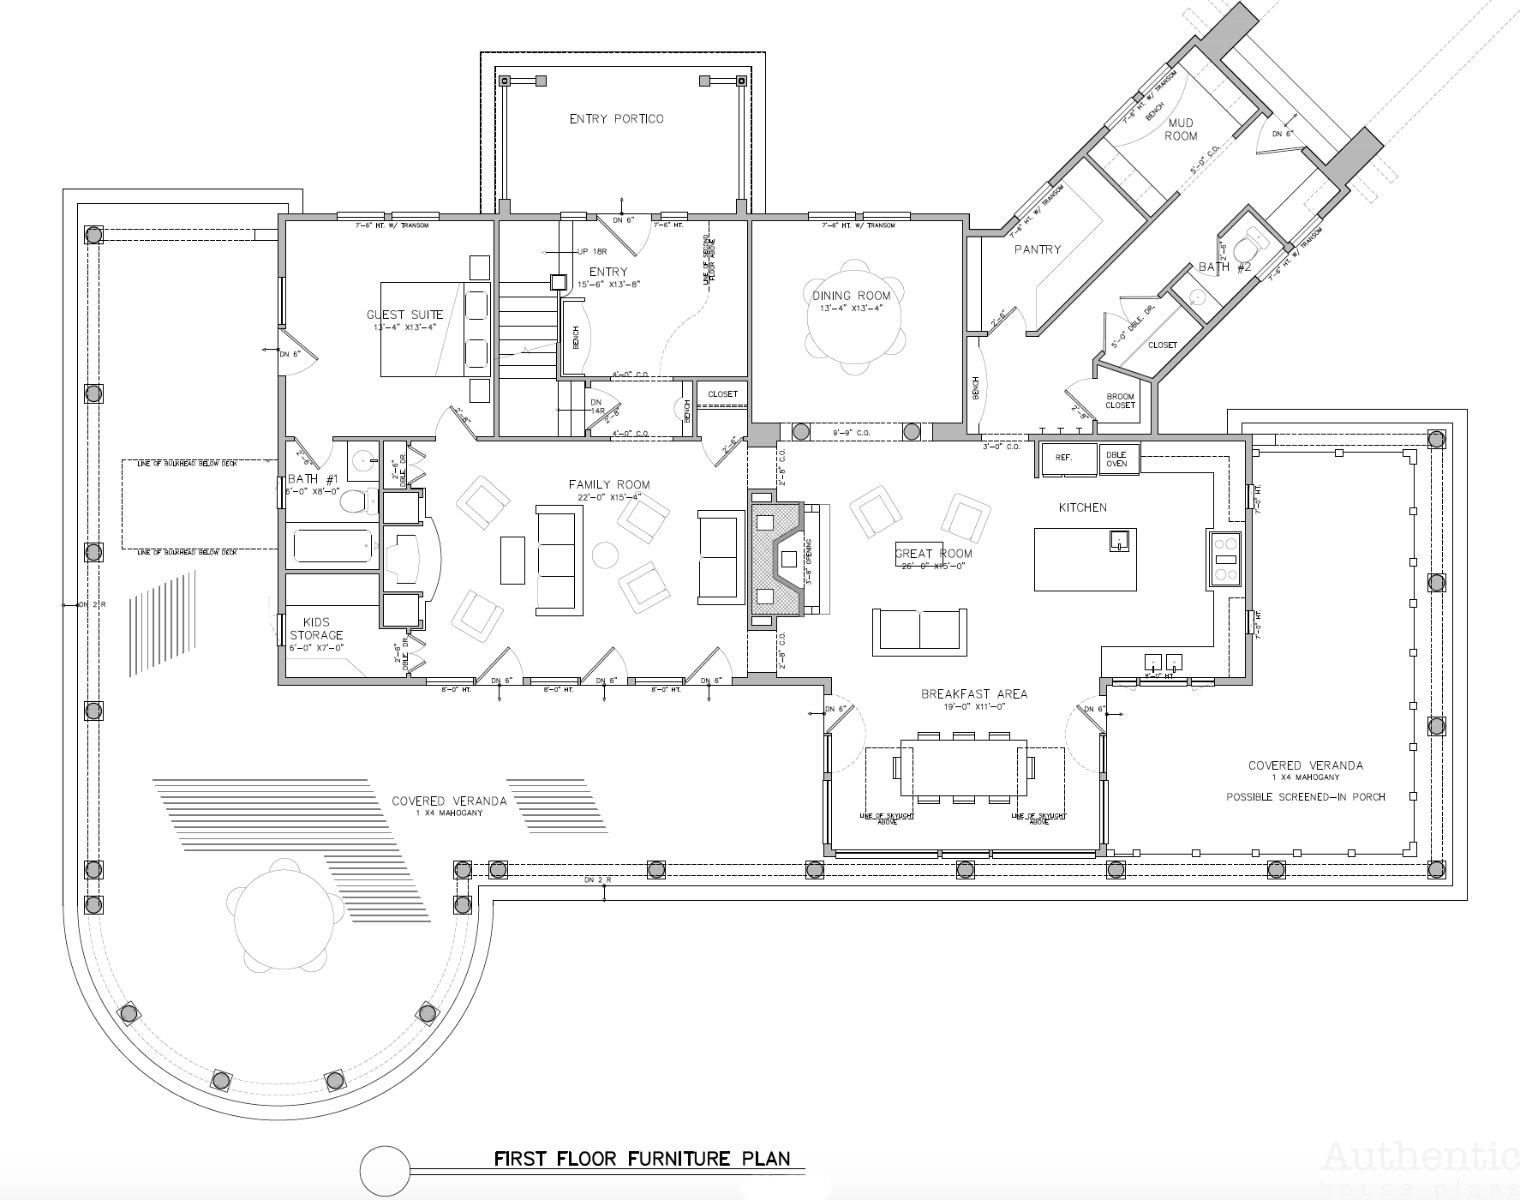 Country Estate House Plan With Equestrian Barn Authentic House Plans House Plans Country Estate Equestrian Barns